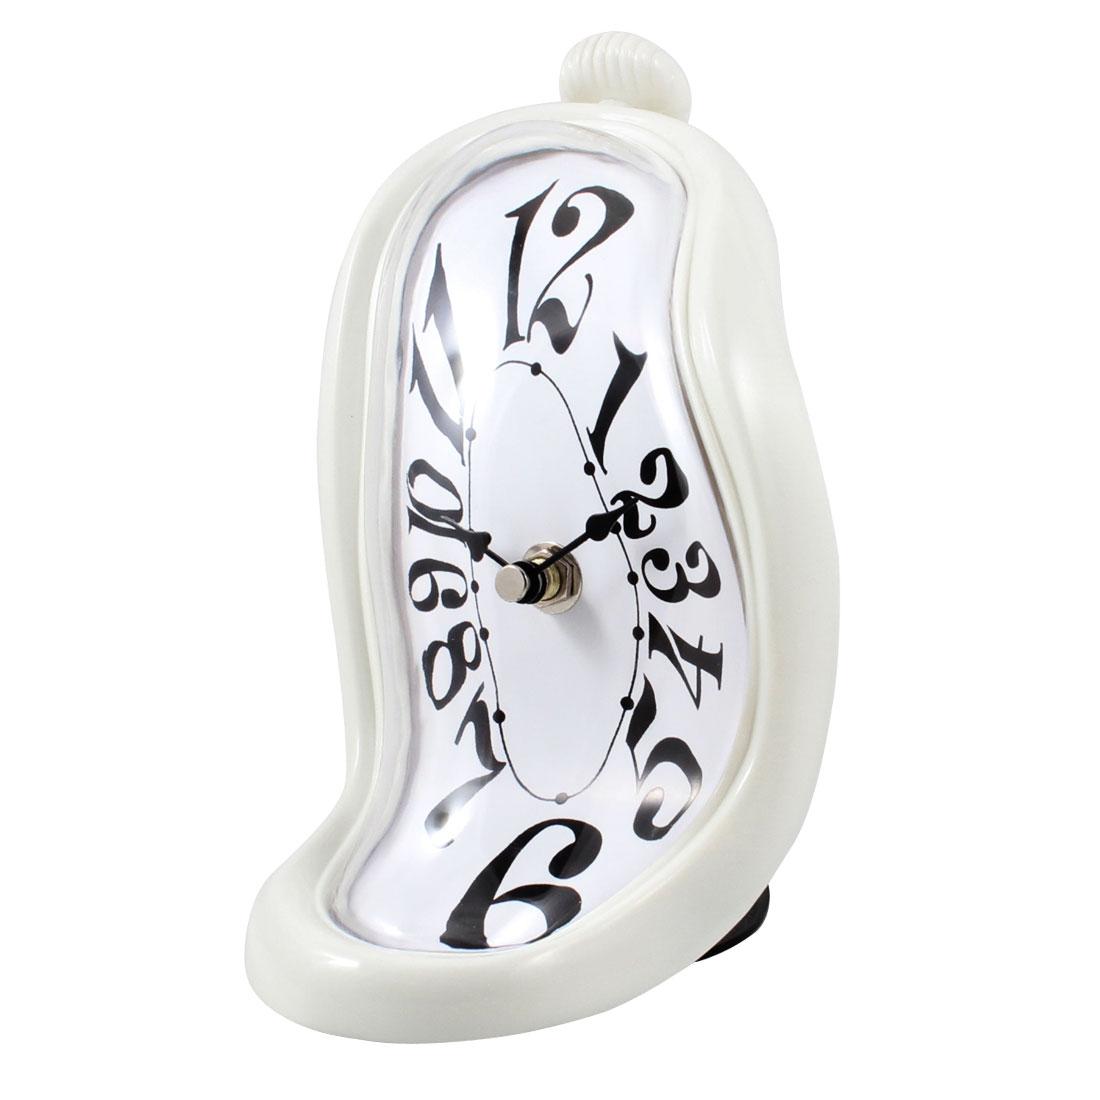 Battery Power Off White Shell Arabic Numbers Shelf Desk Dali Melting Clock